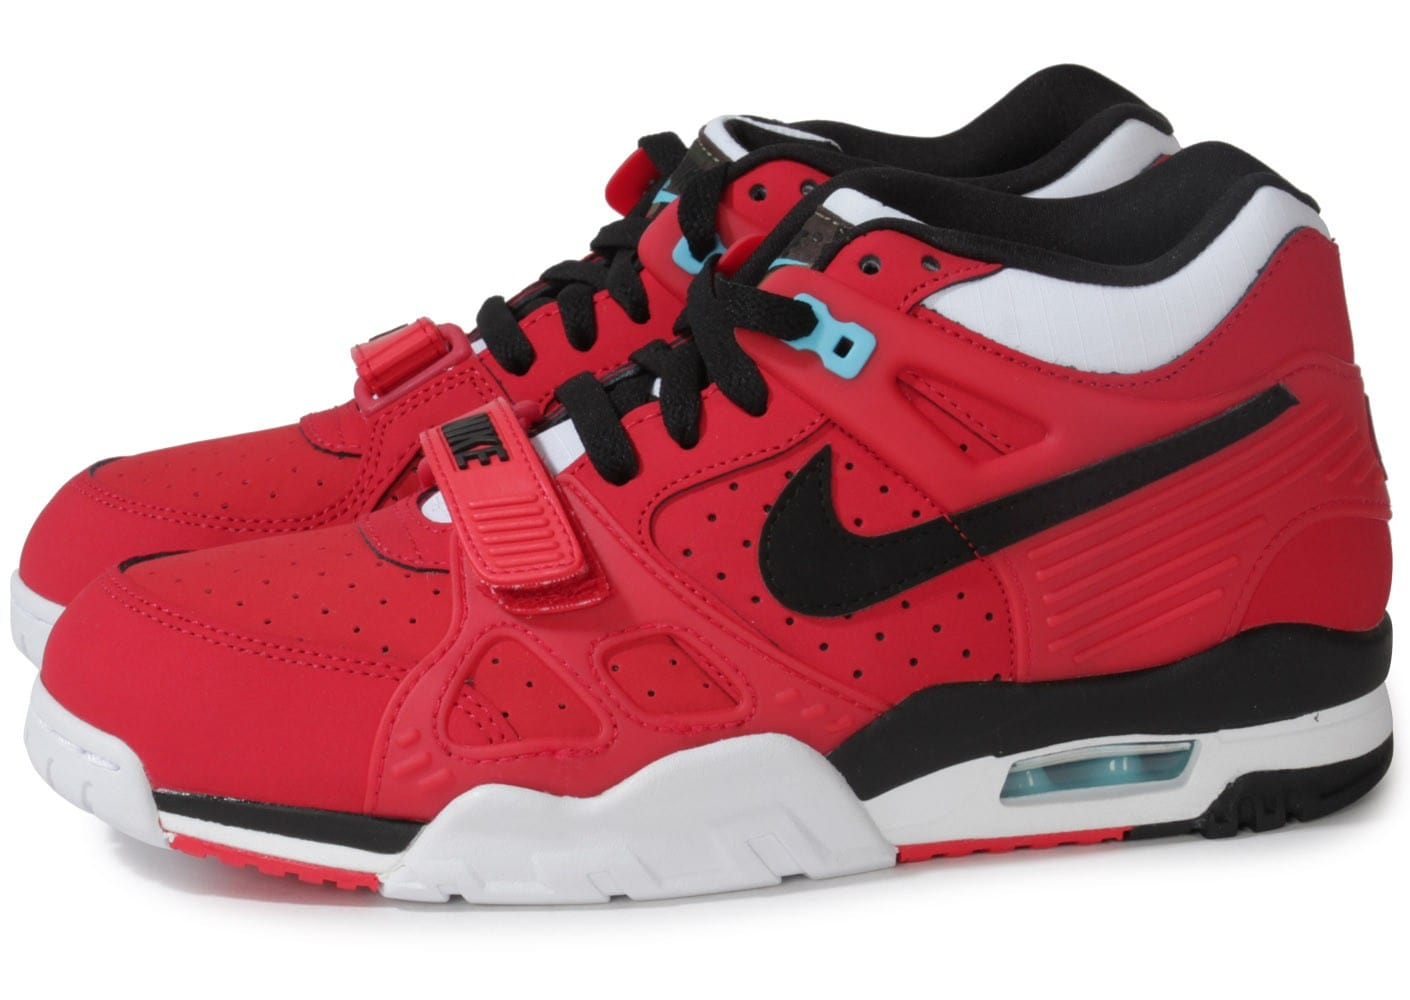 Nike Air Trainer 3 Rouge Chaussures Baskets homme Chausport